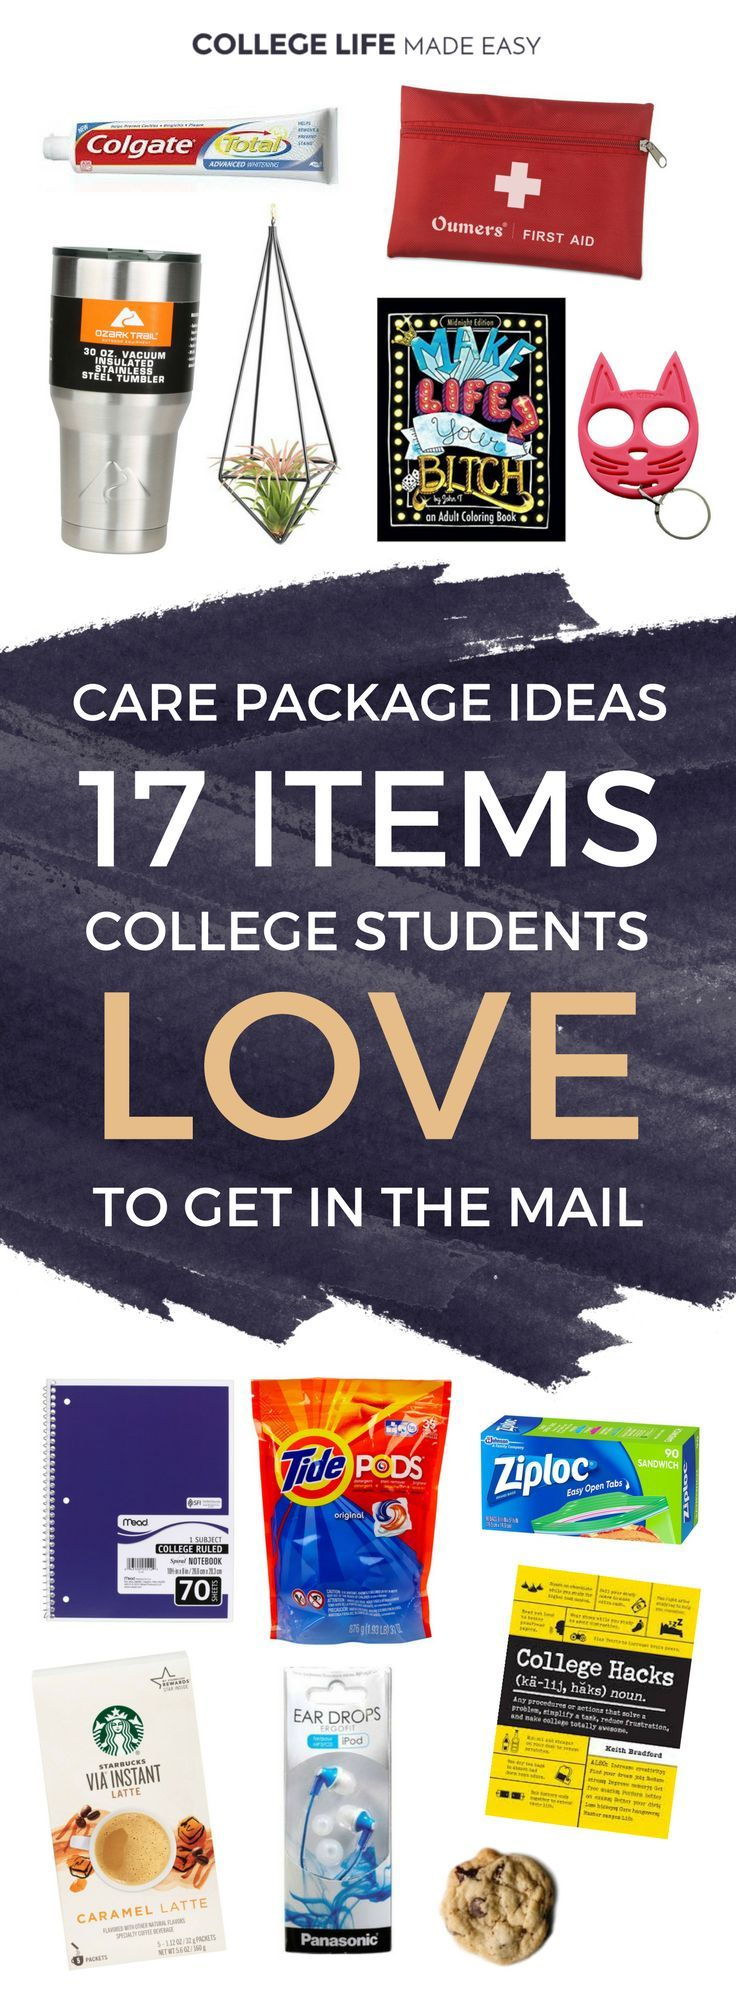 13 College Care Package Ideas That Will Bring Smiles to Student\'s ...